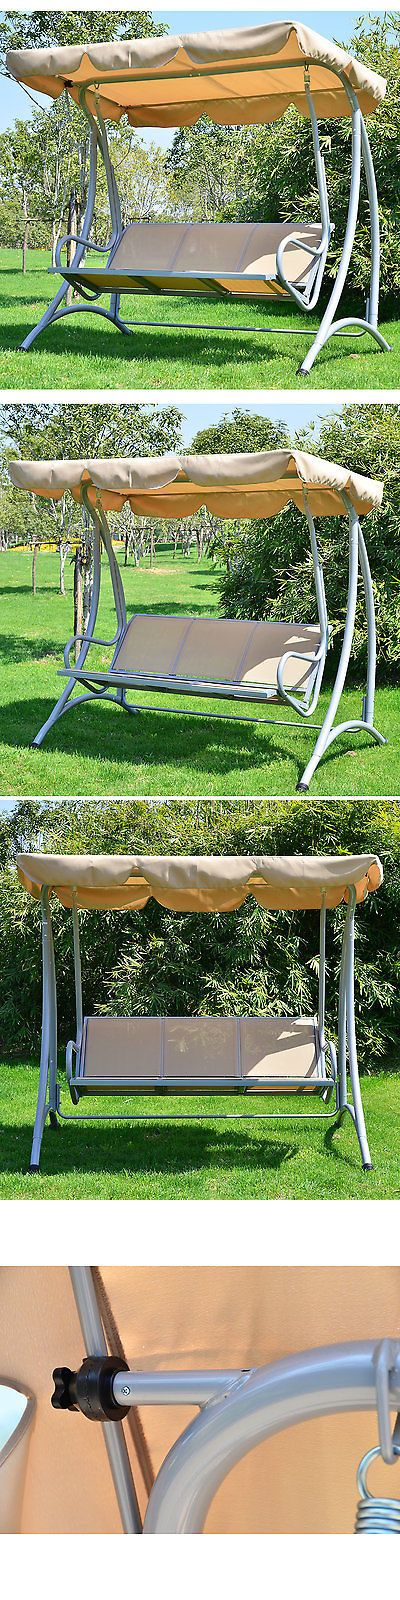 Swings 79700: Charlton Home Northfield Patio Swing With Stand  U003e BUY IT NOW  ONLY